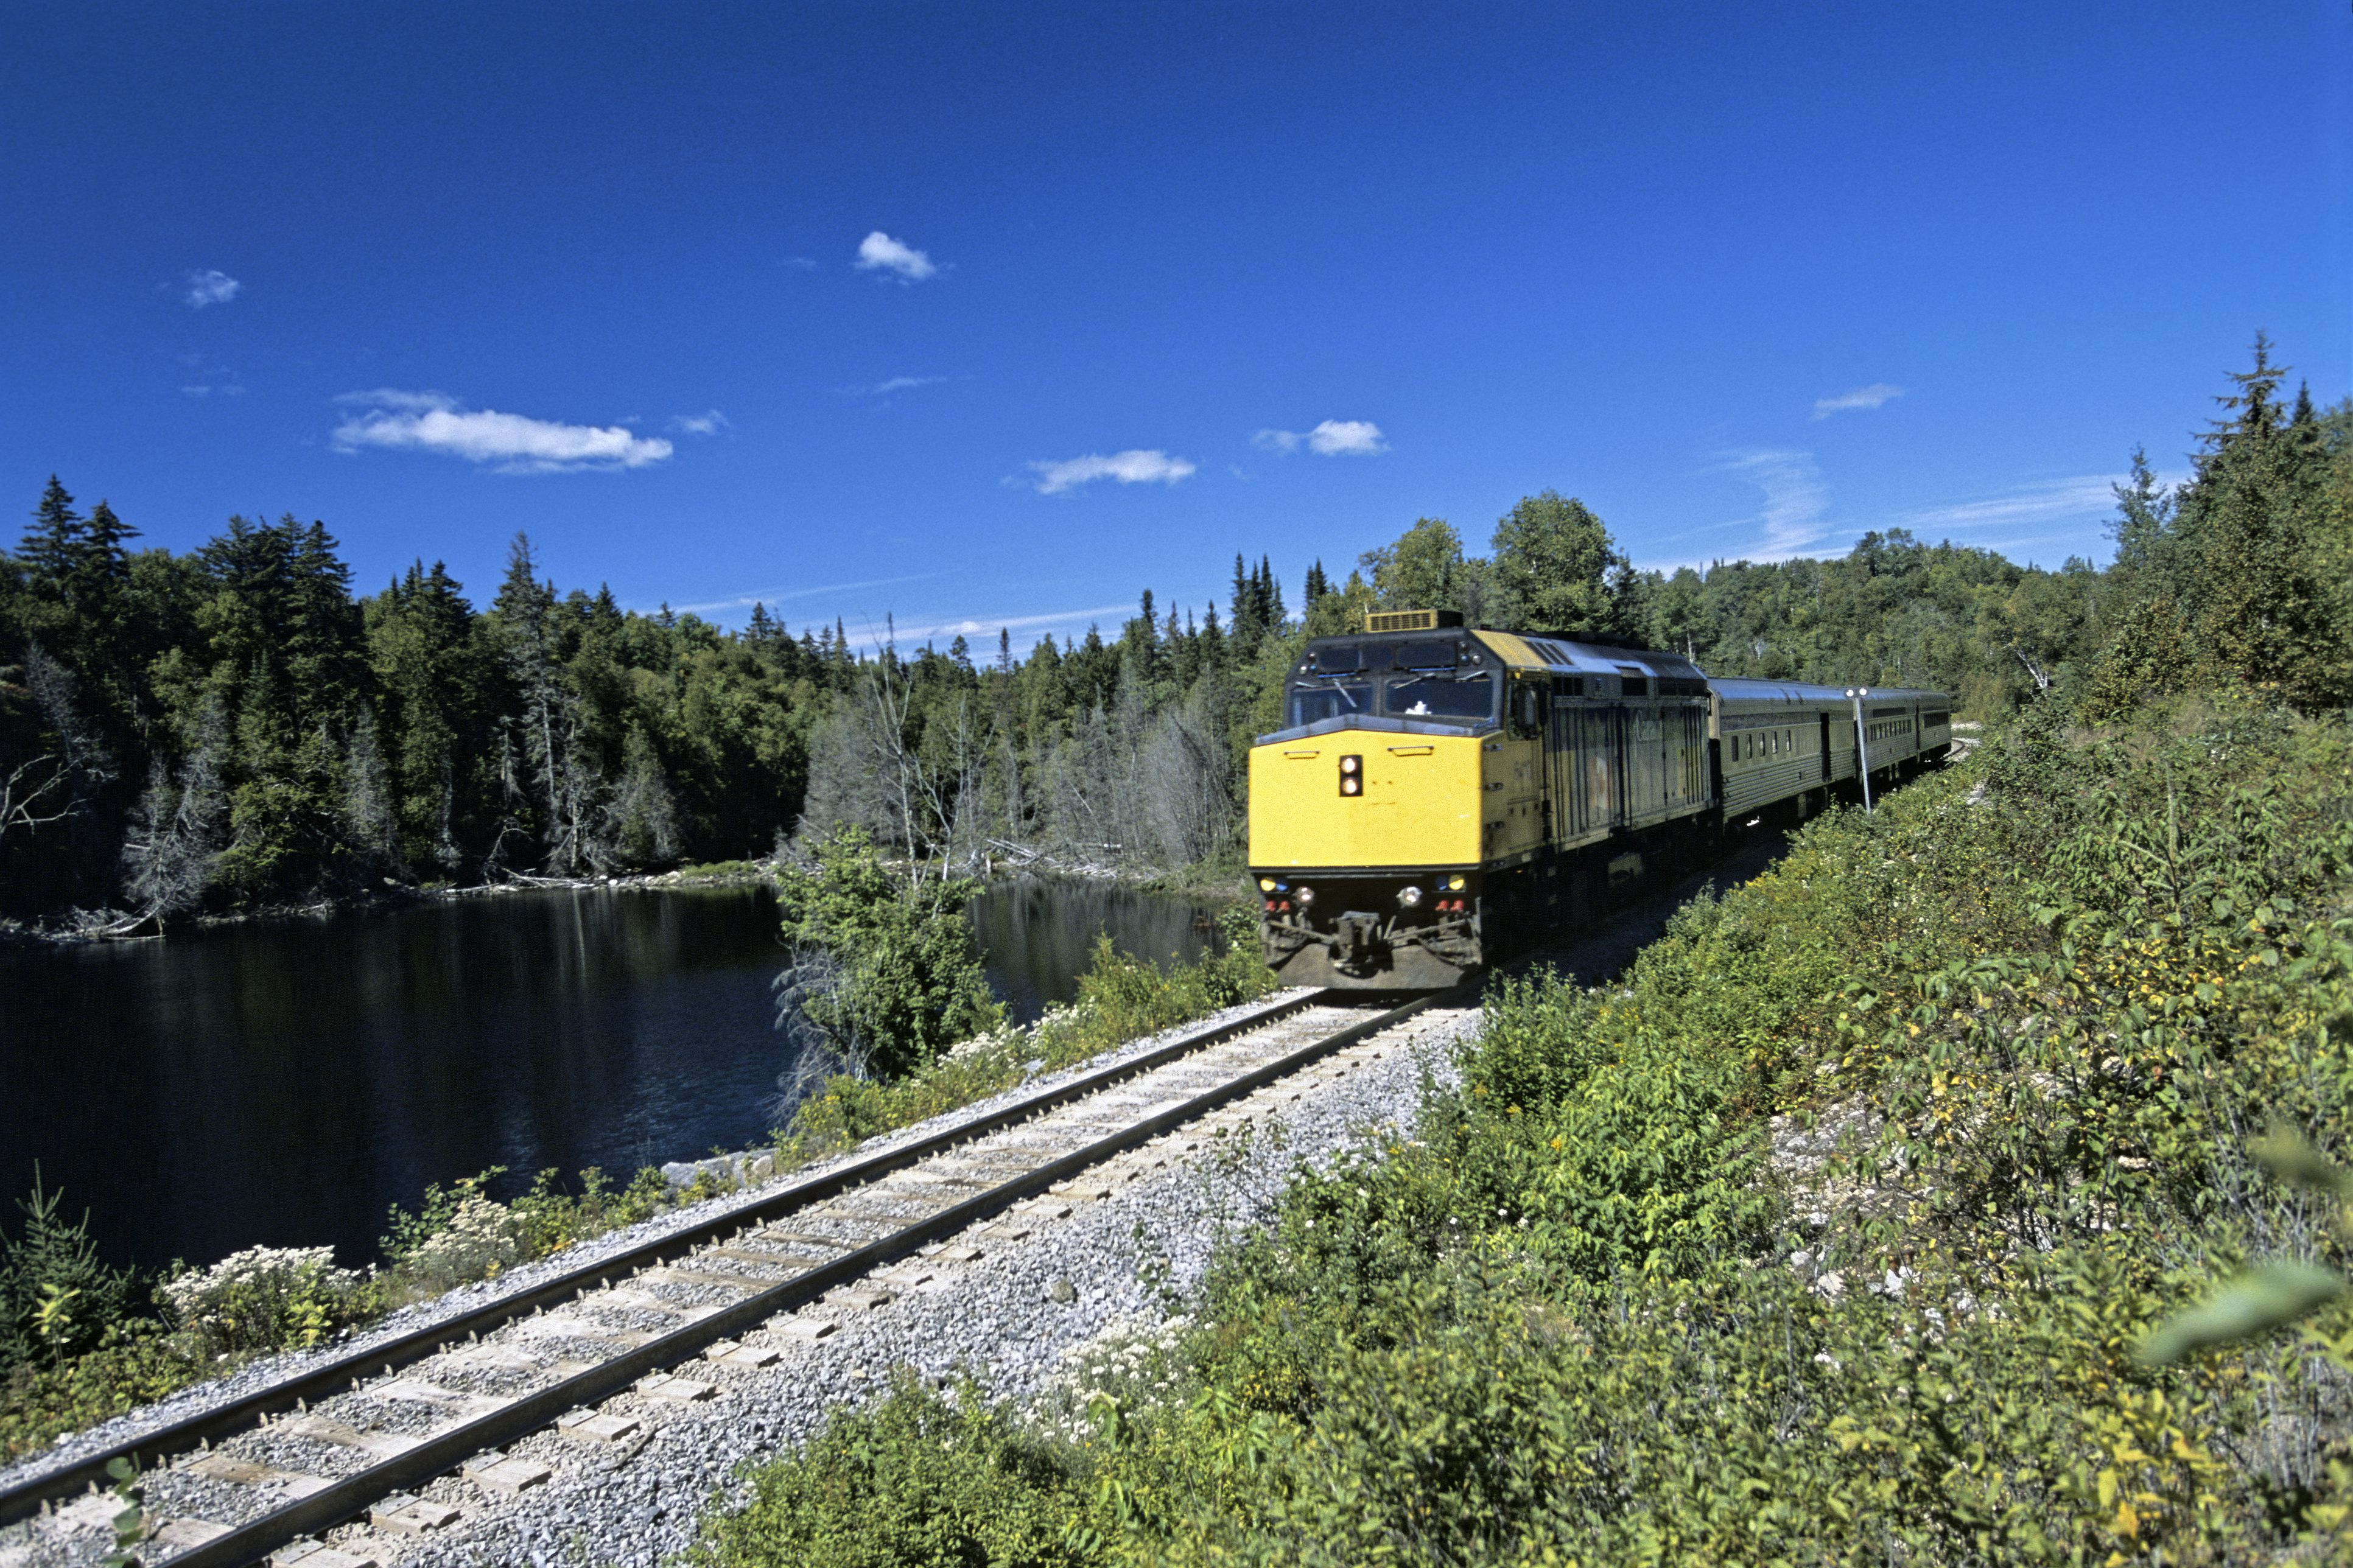 Canada, Quebec Province, near Shawinigan, Le Saguenay Train on Montreal-Jonquiere Railroad line stopping everywhere on demand